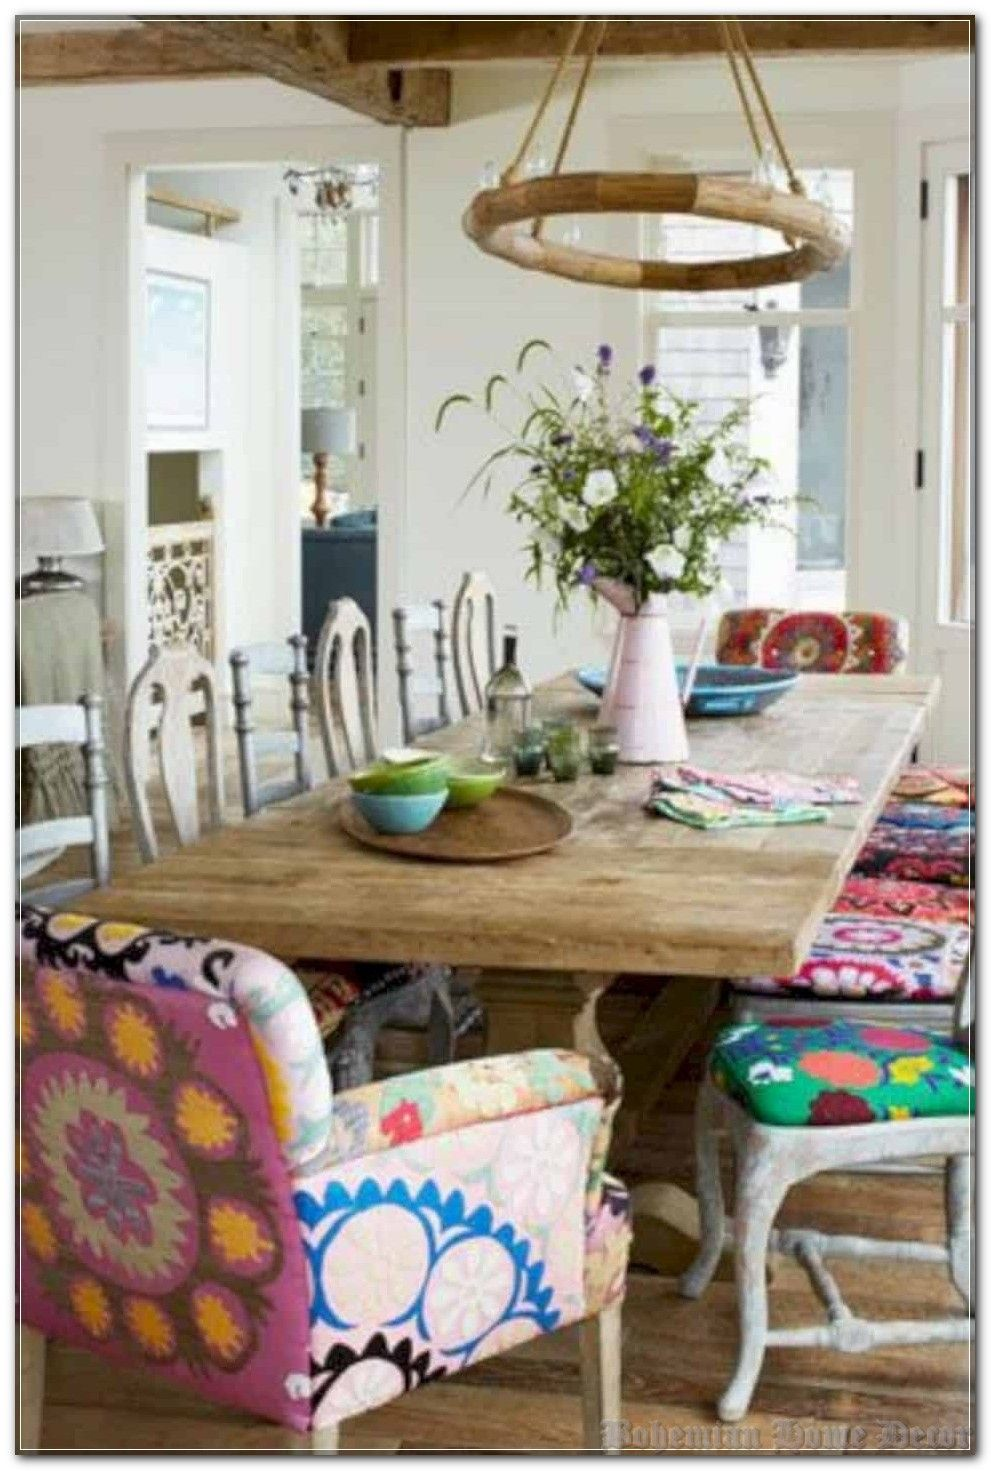 Top 10 Bohemian Home Decor Accounts To Follow On Twitter